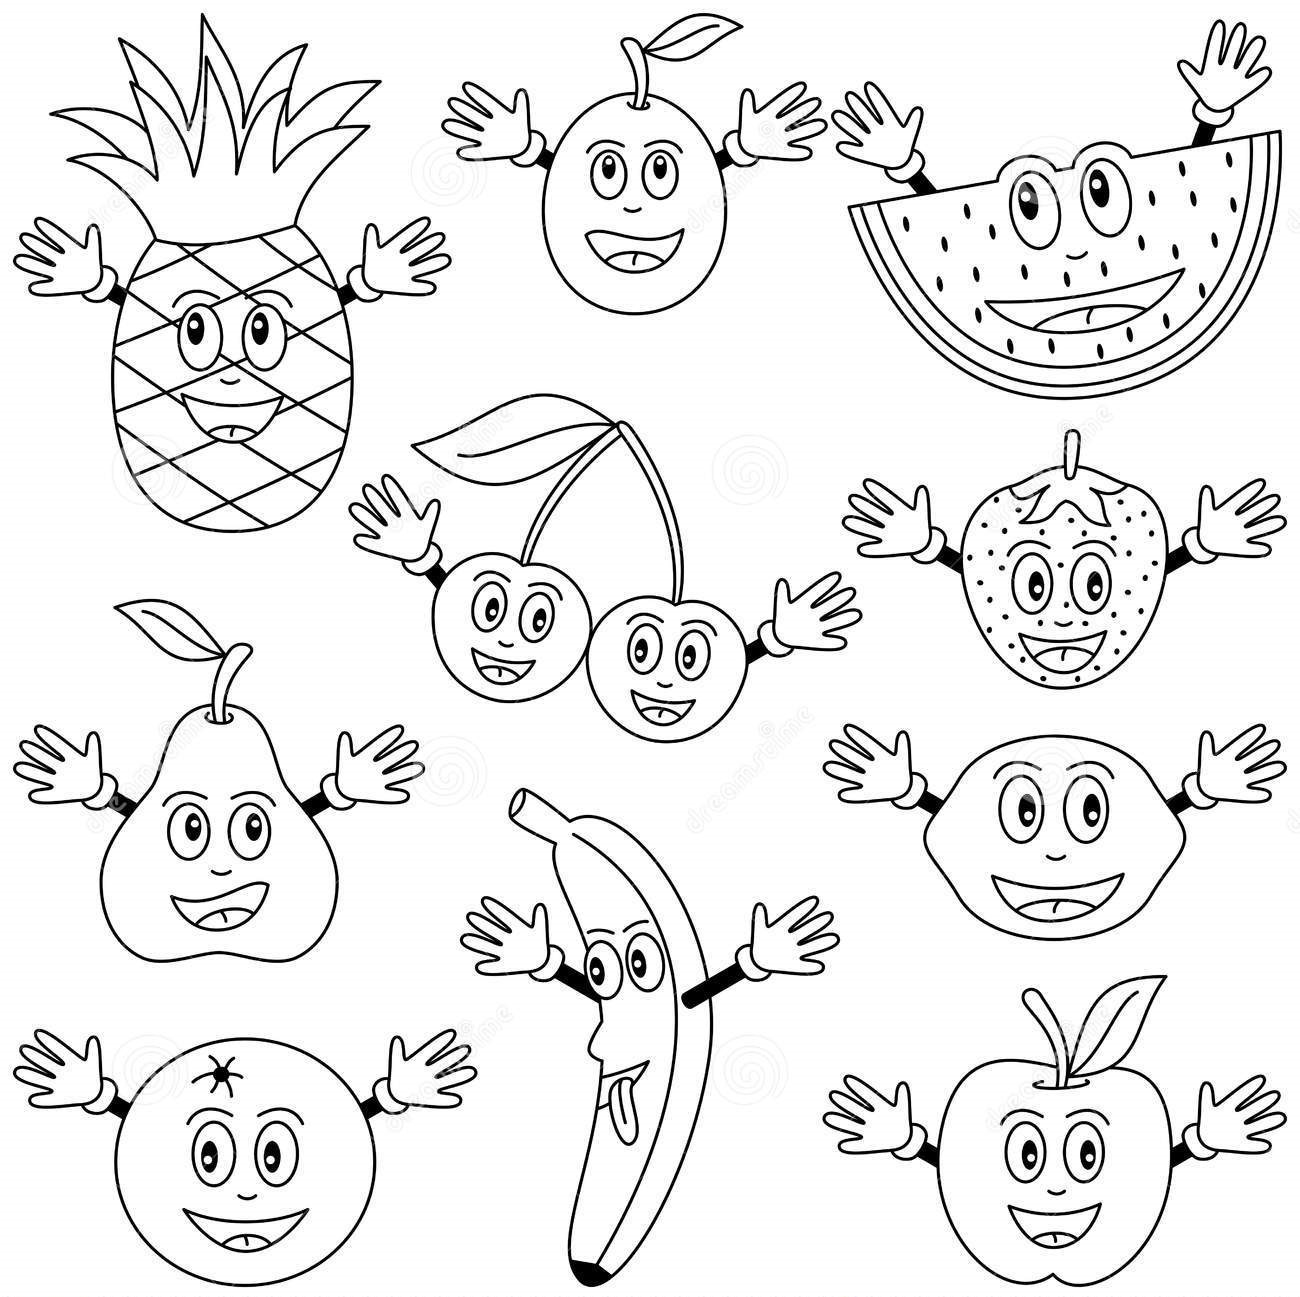 fruits and vegetables coloring book fruit and veg coloring pages google search vegetable coloring book fruits vegetables and